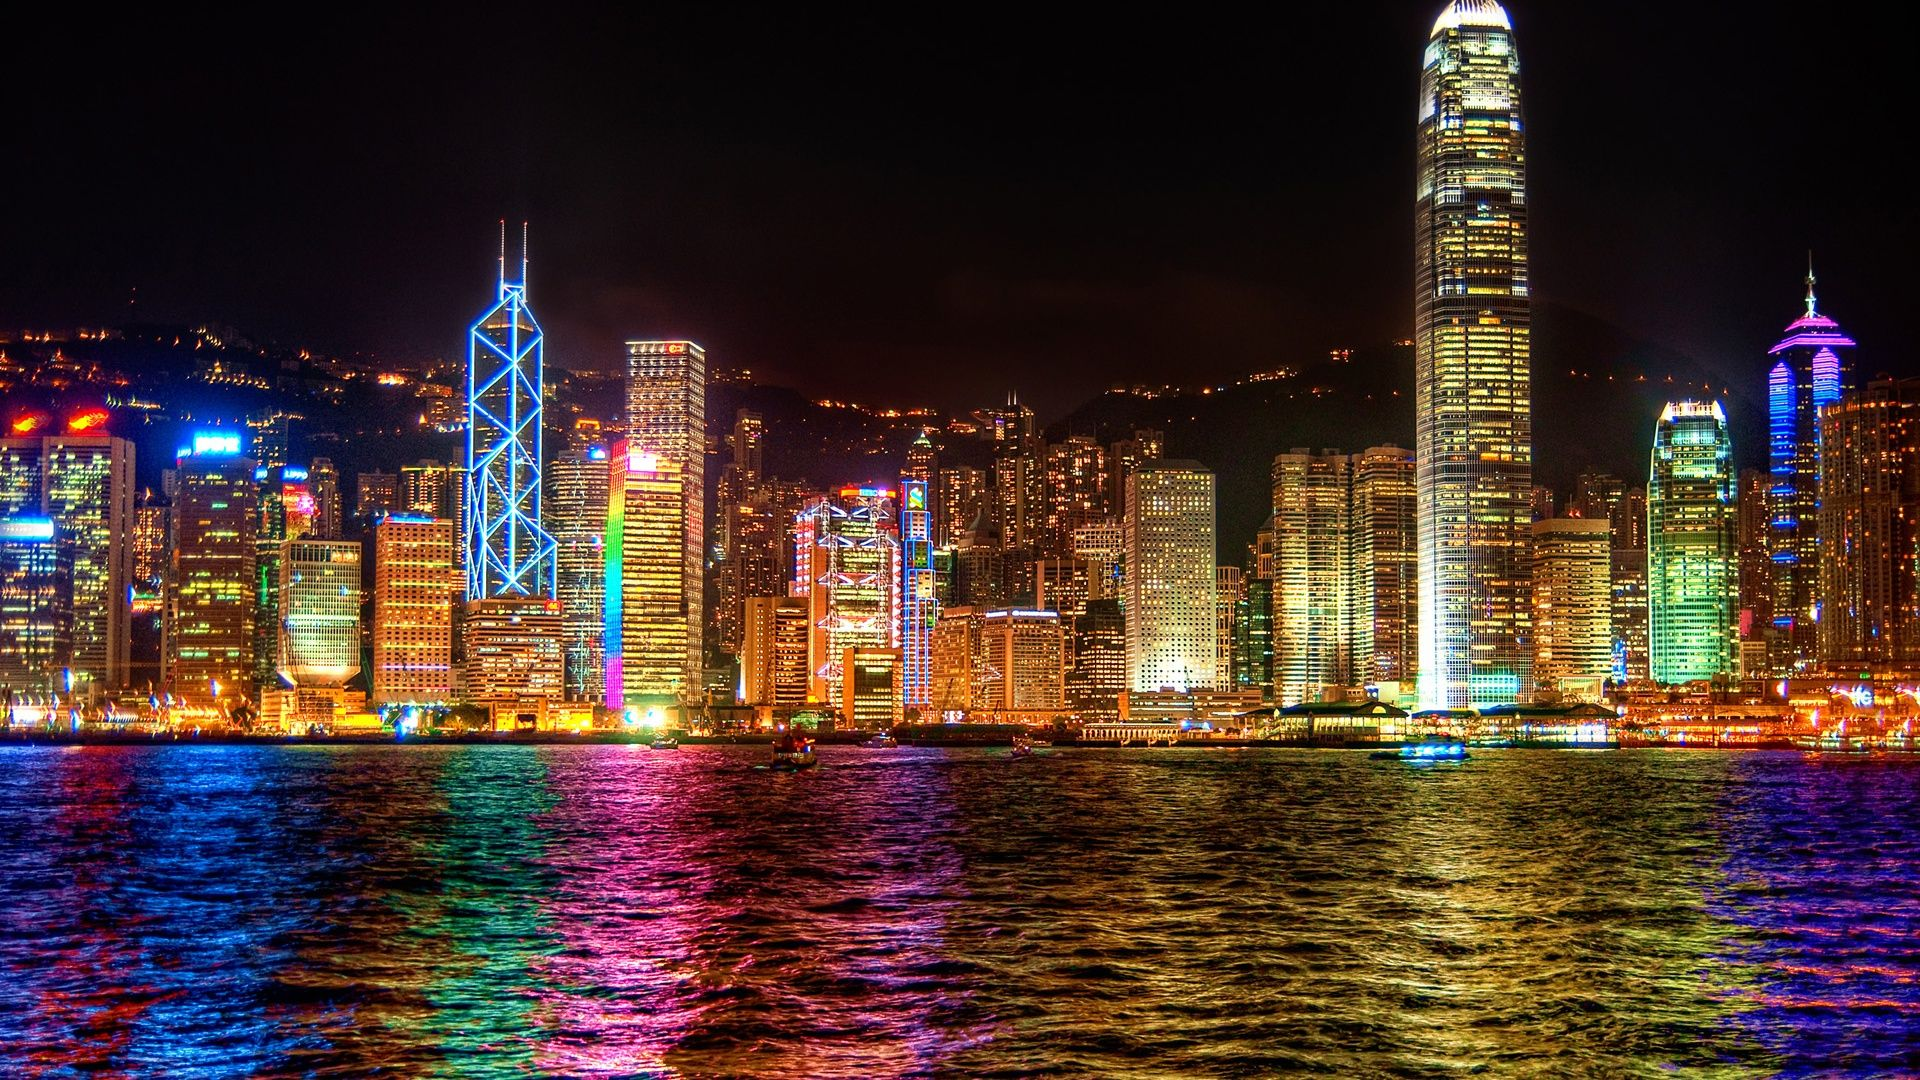 Hong Kong City Lights At Night Most Beautiful Cities City Lights At Night City Wallpaper